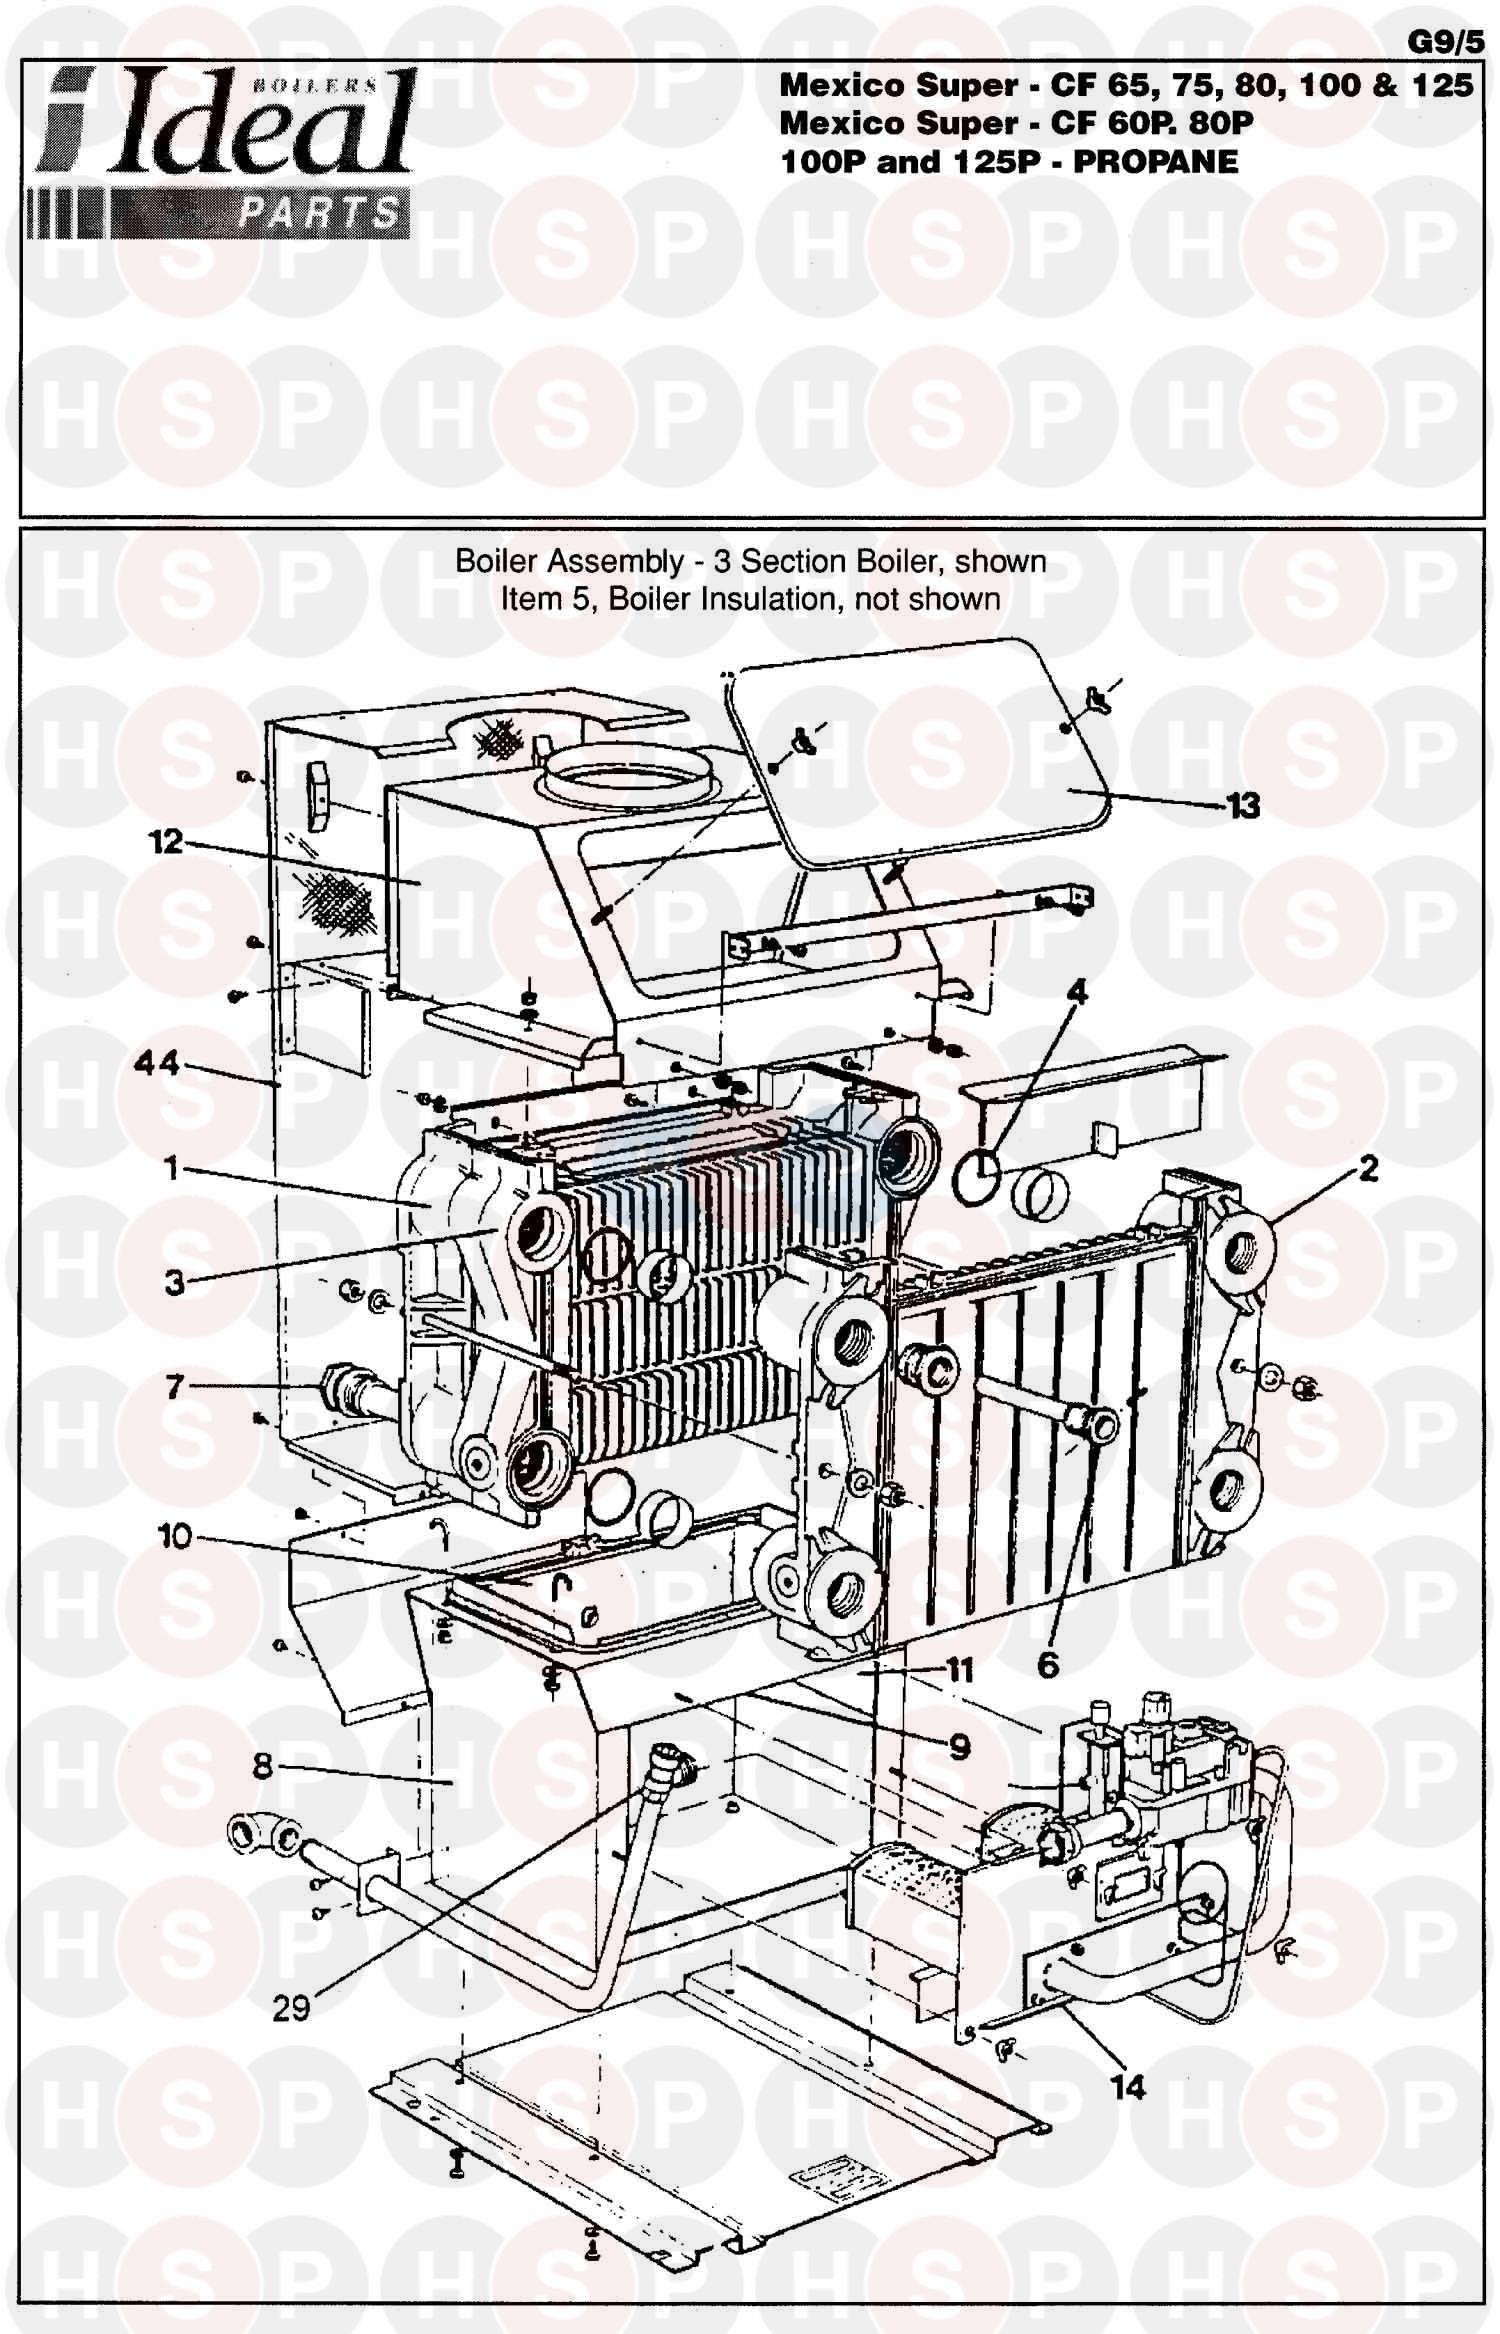 Ideal MEXICO SUPER CF 65 (BOILER ASSEMBLY 1) Diagram